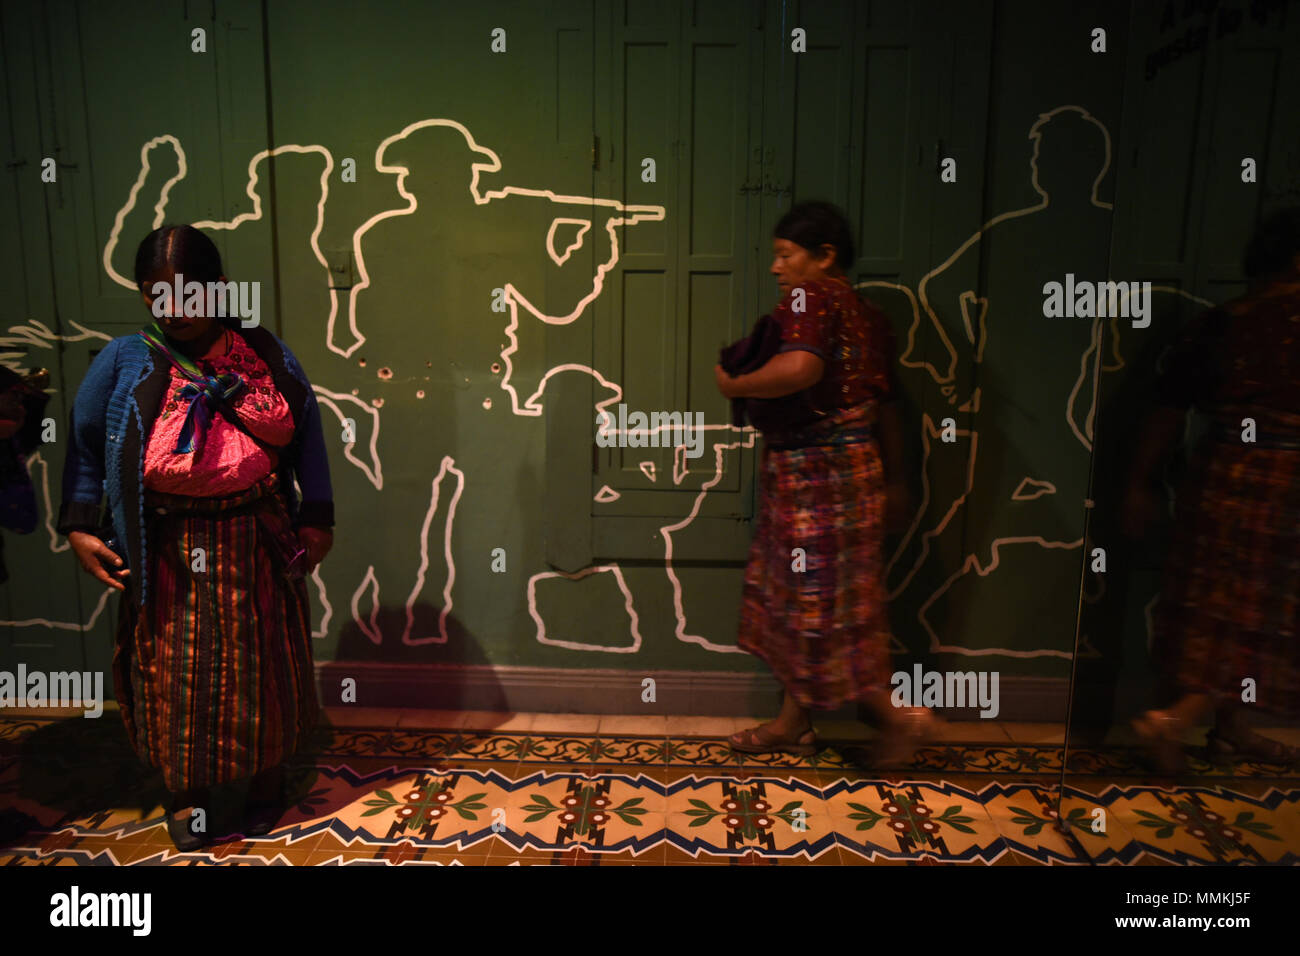 Ciudad De Guatemala, Guatemala. 12th May, 2018. Two indigenous women attend the inauguration event in the Casa de la Memoria, in Guatemala City, Guatemala, on 10 May 2018. In the front yard of the Casa de la Memoria, in the historic center of Guatemala City, some 70 Ixil indigenous people settle in chairs, standing and on the floor to be photographed by personnel from the Center for Legal Action in Human Rights ( CALDH). Credit: EDWIN BERCIÁN/EFE/Alamy Live News - Stock Image